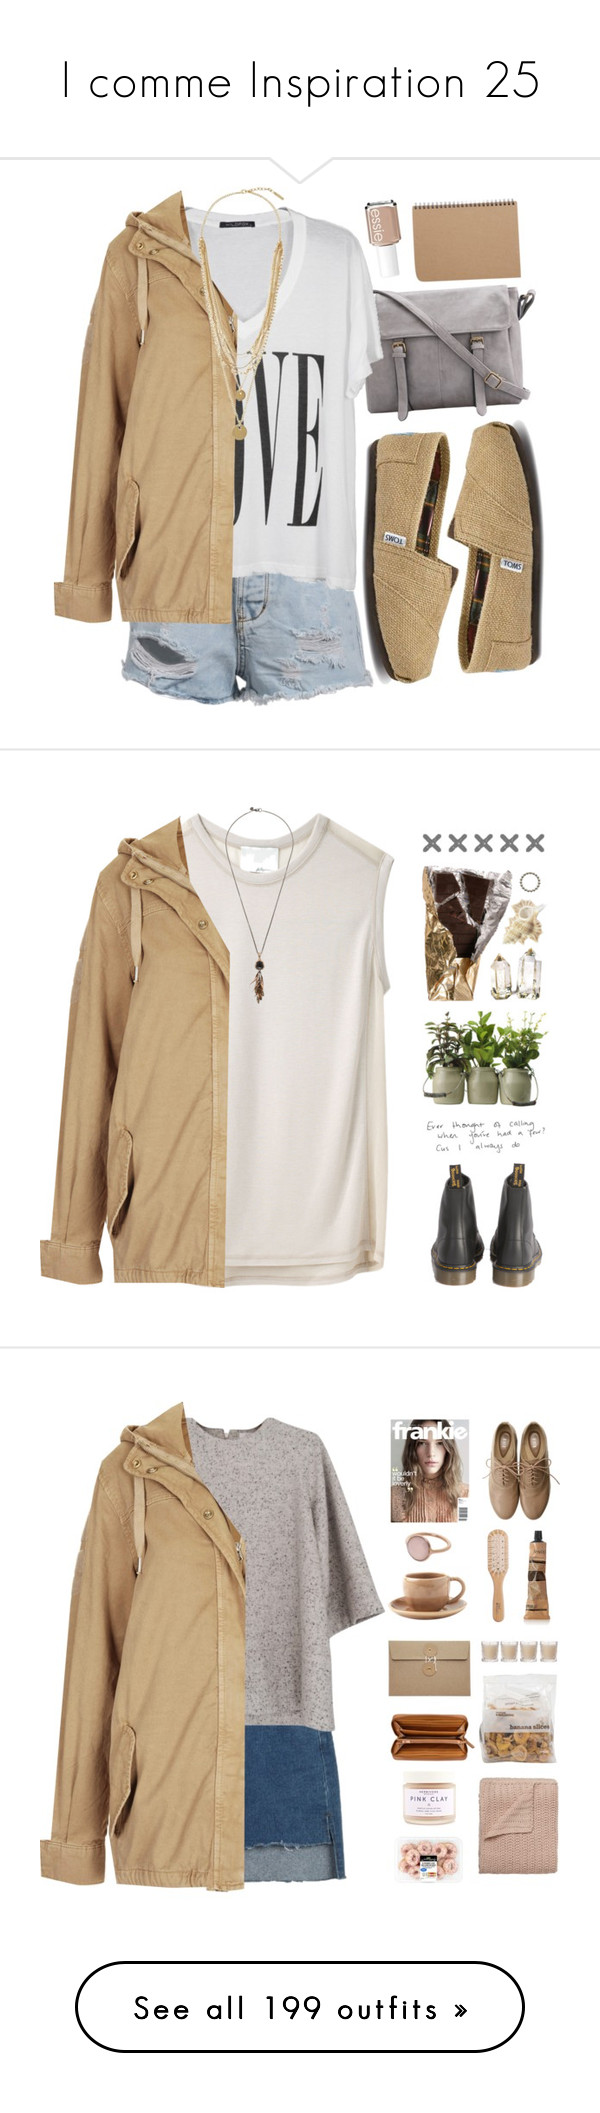 """I comme Inspiration 25"" by vicky-soleil ❤ liked on Polyvore featuring outerwear, jackets, coats, coats & jackets, sand, lightweight jacket, short parka, topshop parka, brown jacket and lightweight cotton jacket"